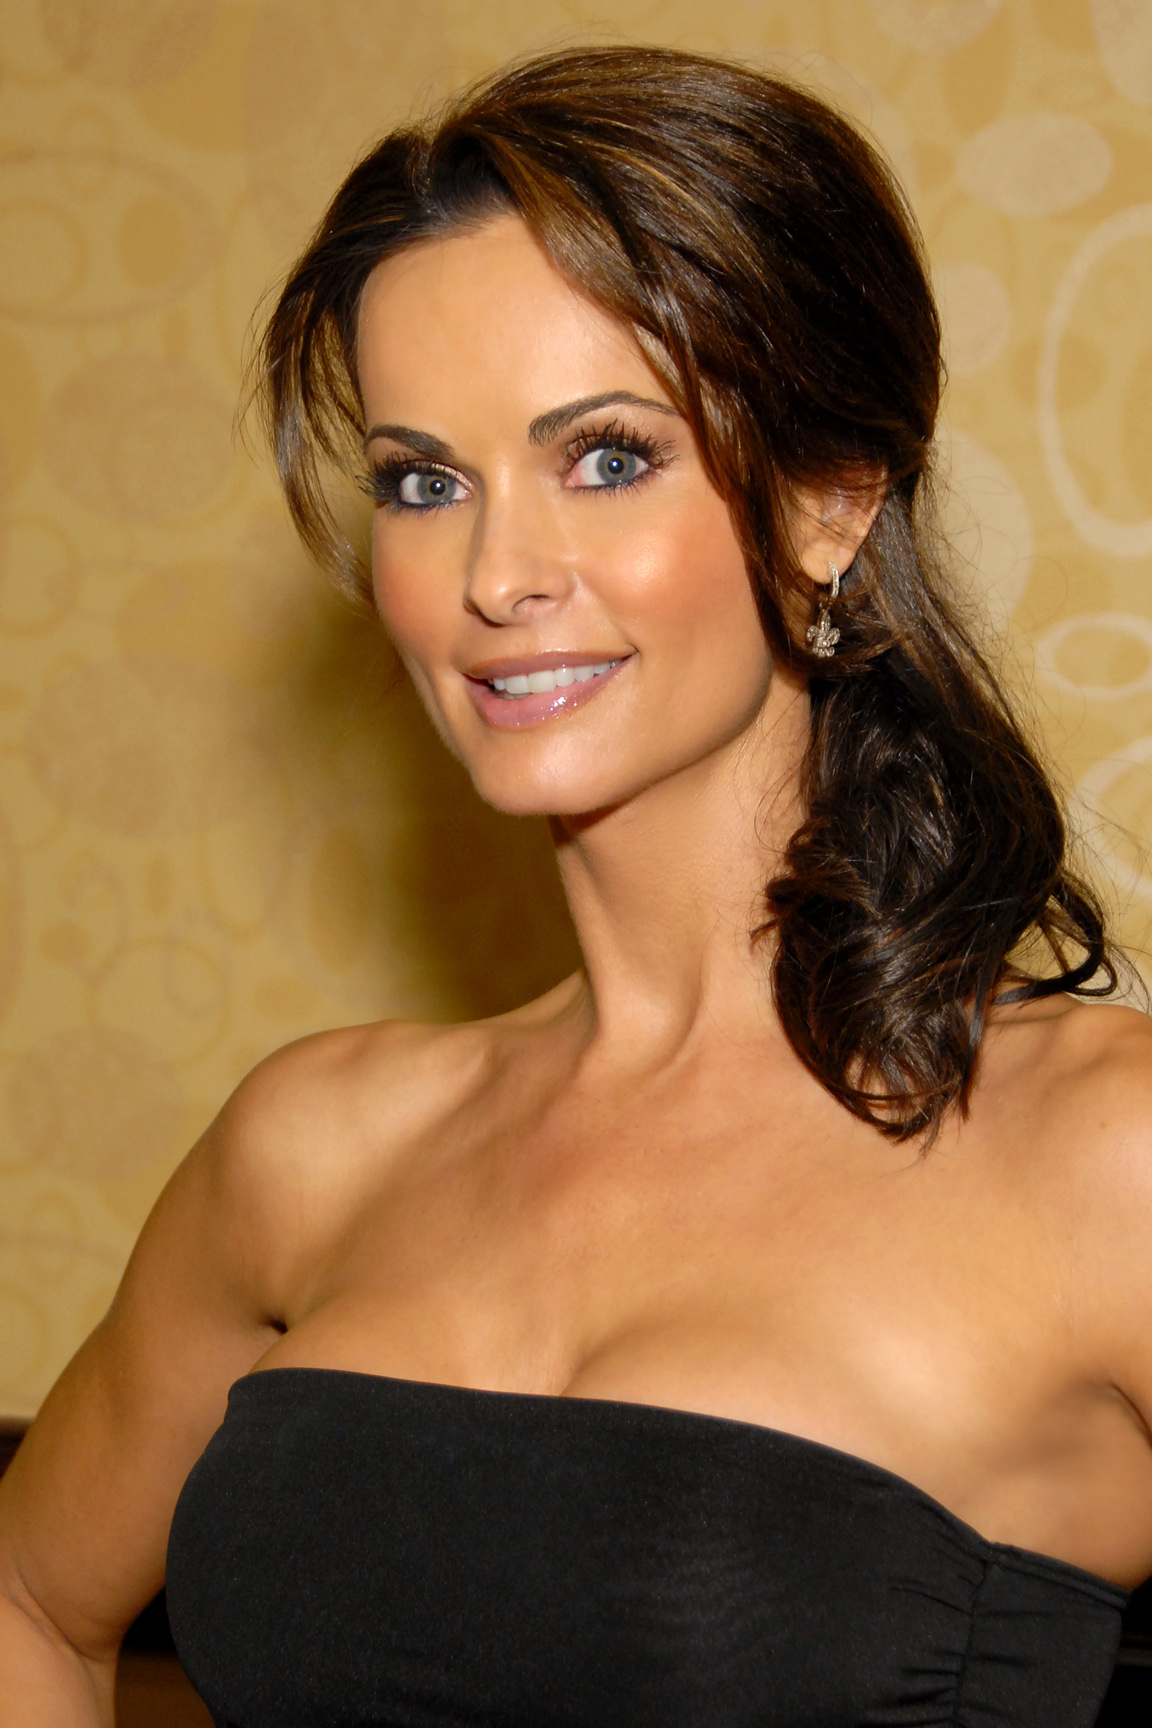 Description Karen McDougal 2011.jpg